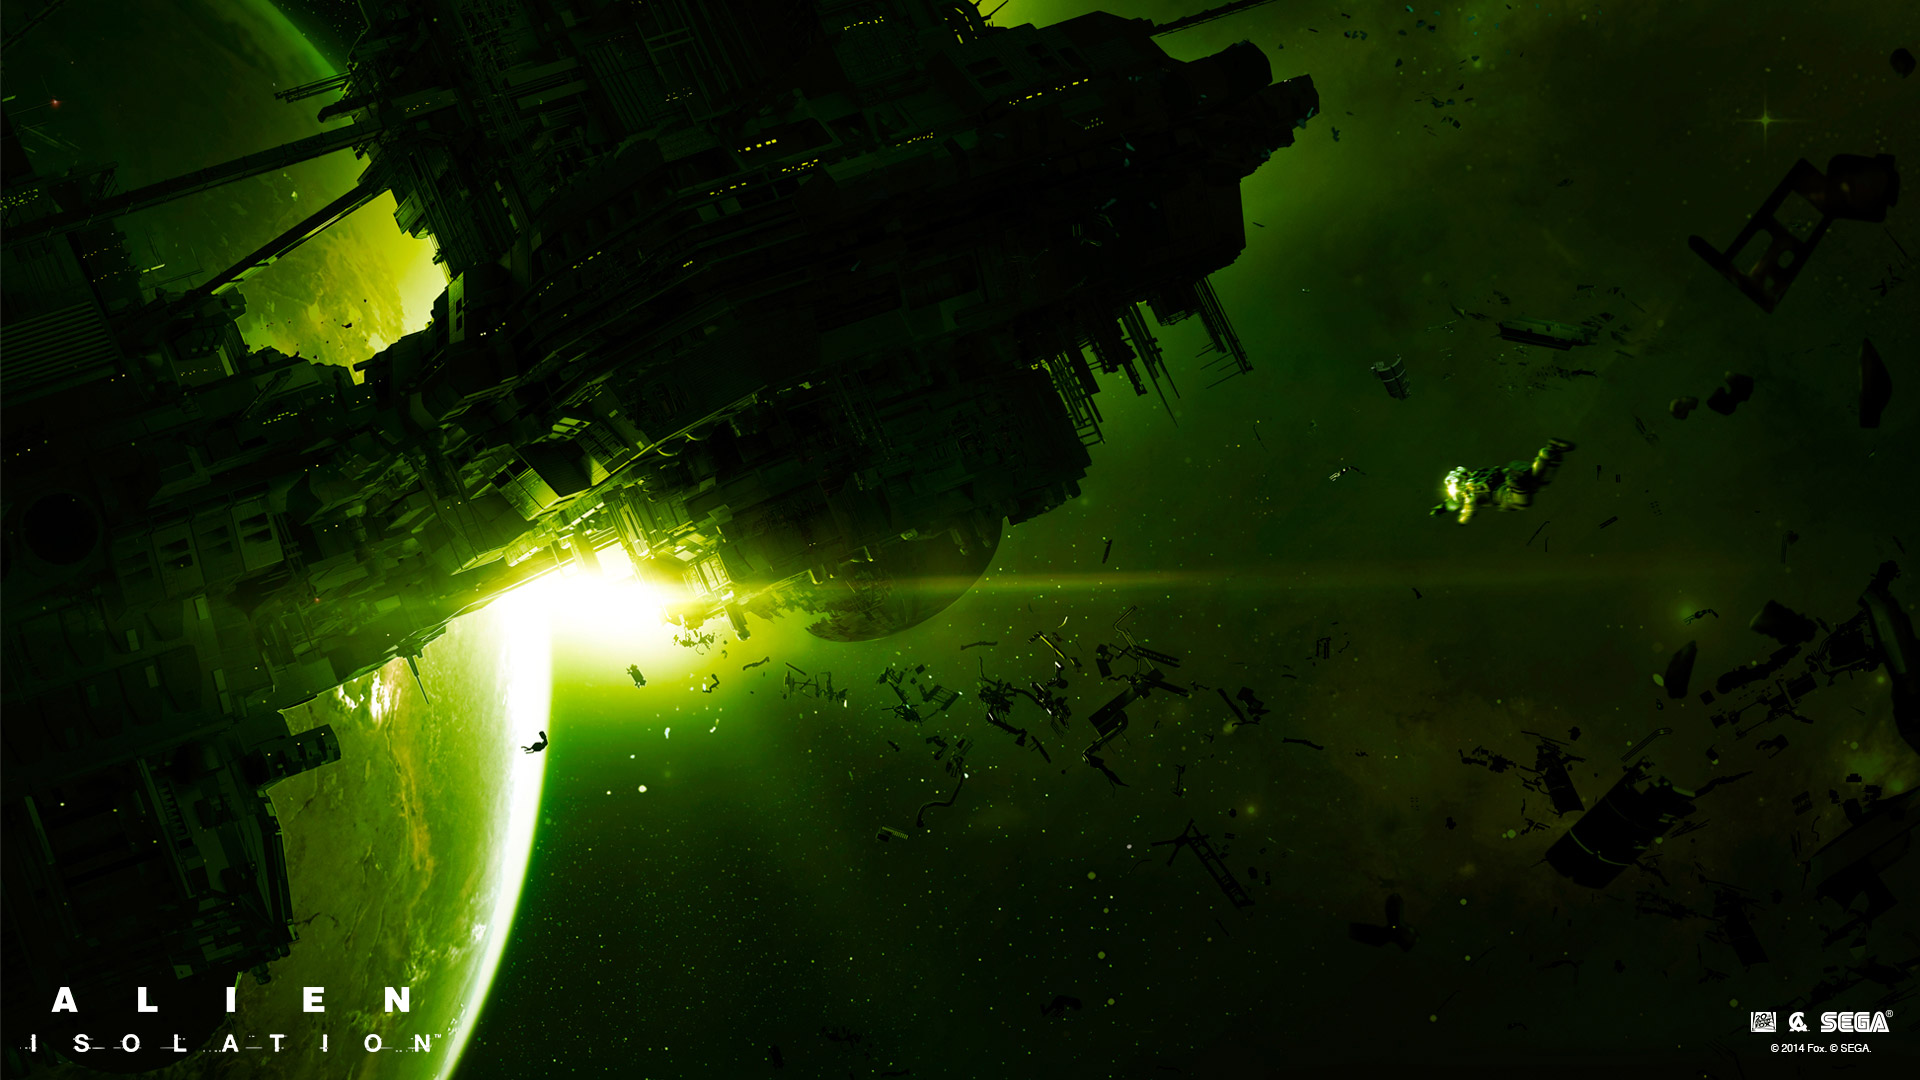 Alien Isolation wallpaper 1